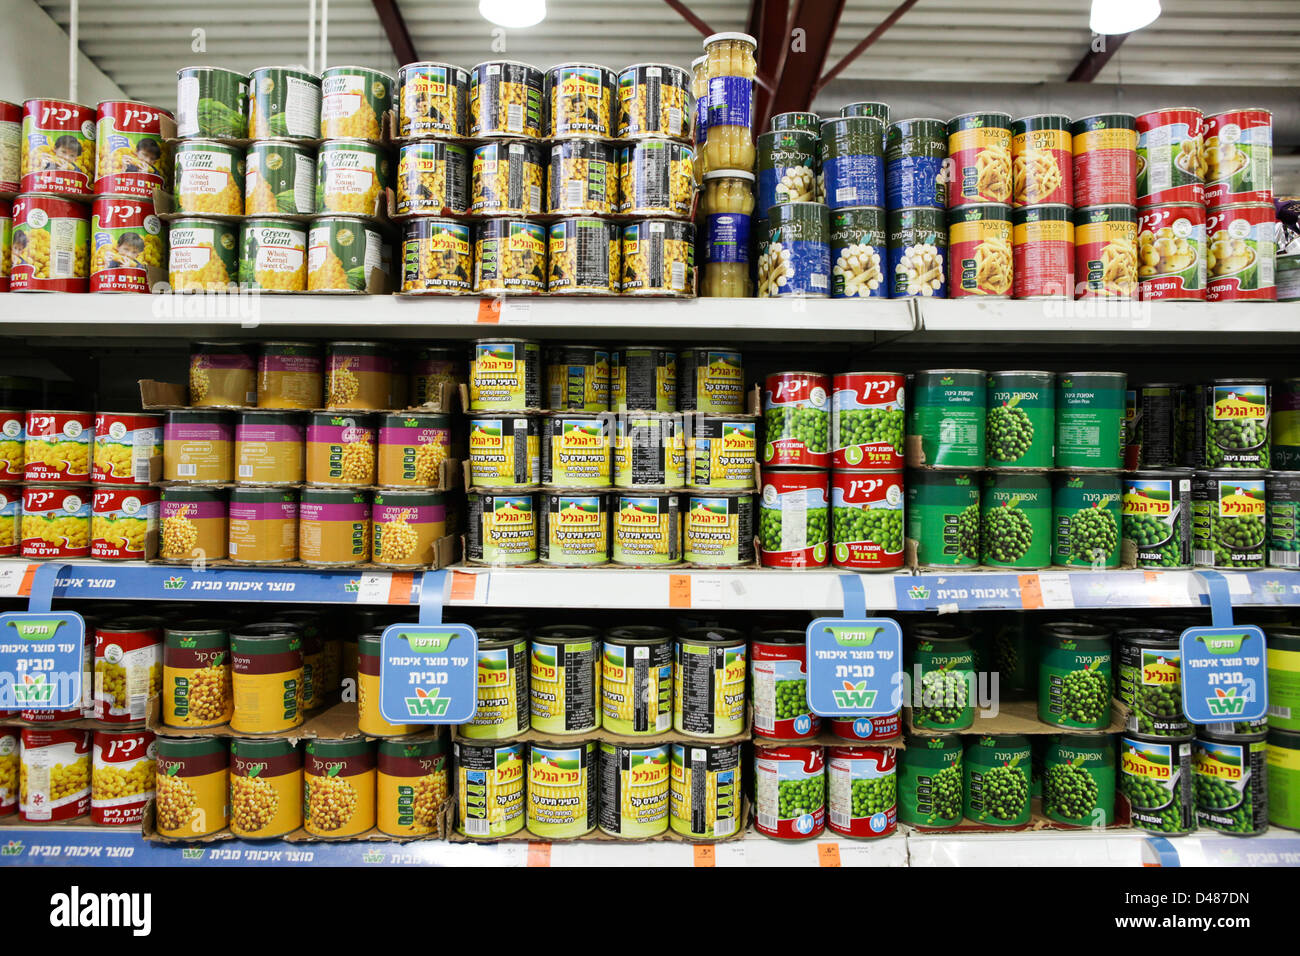 Interior of a supermarket, photographed in Israel - Stock Image